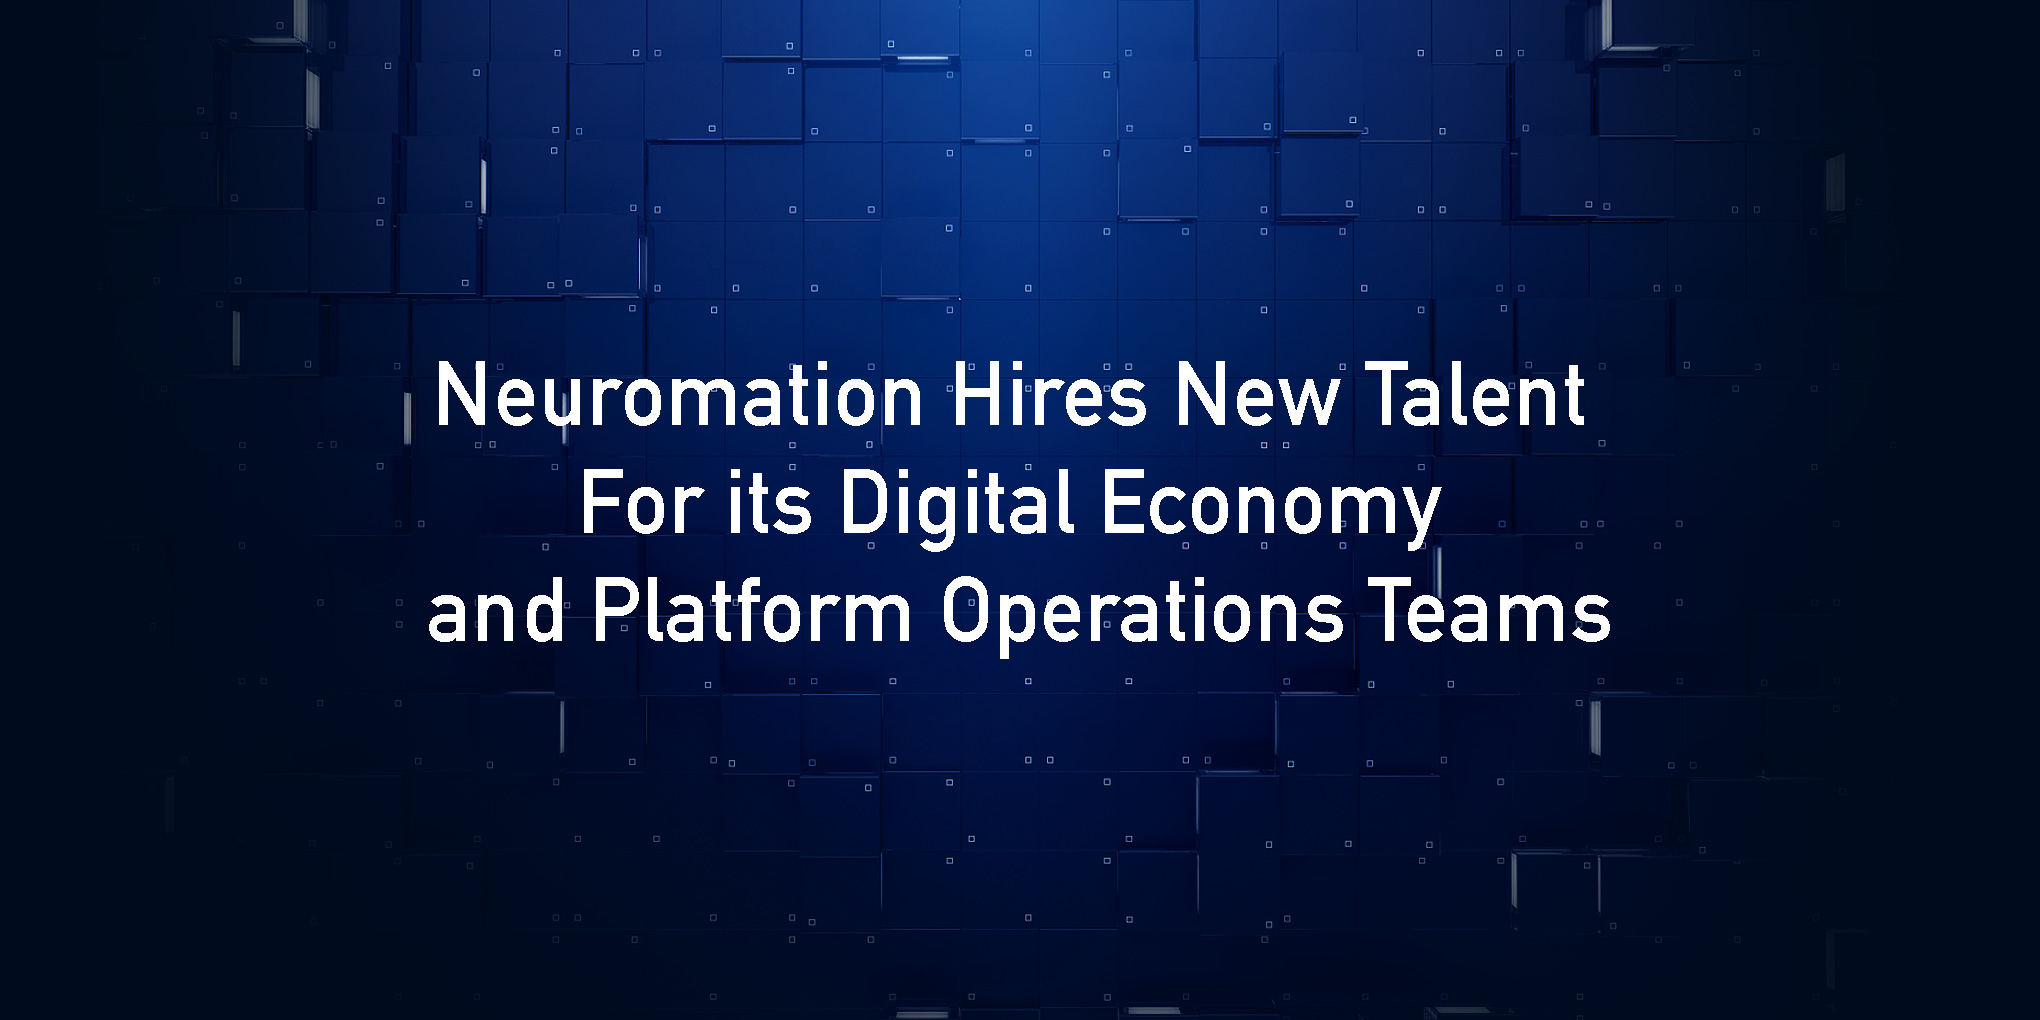 Neuromation Hires New Talent For its Digital Economy and Platform Operations Teams